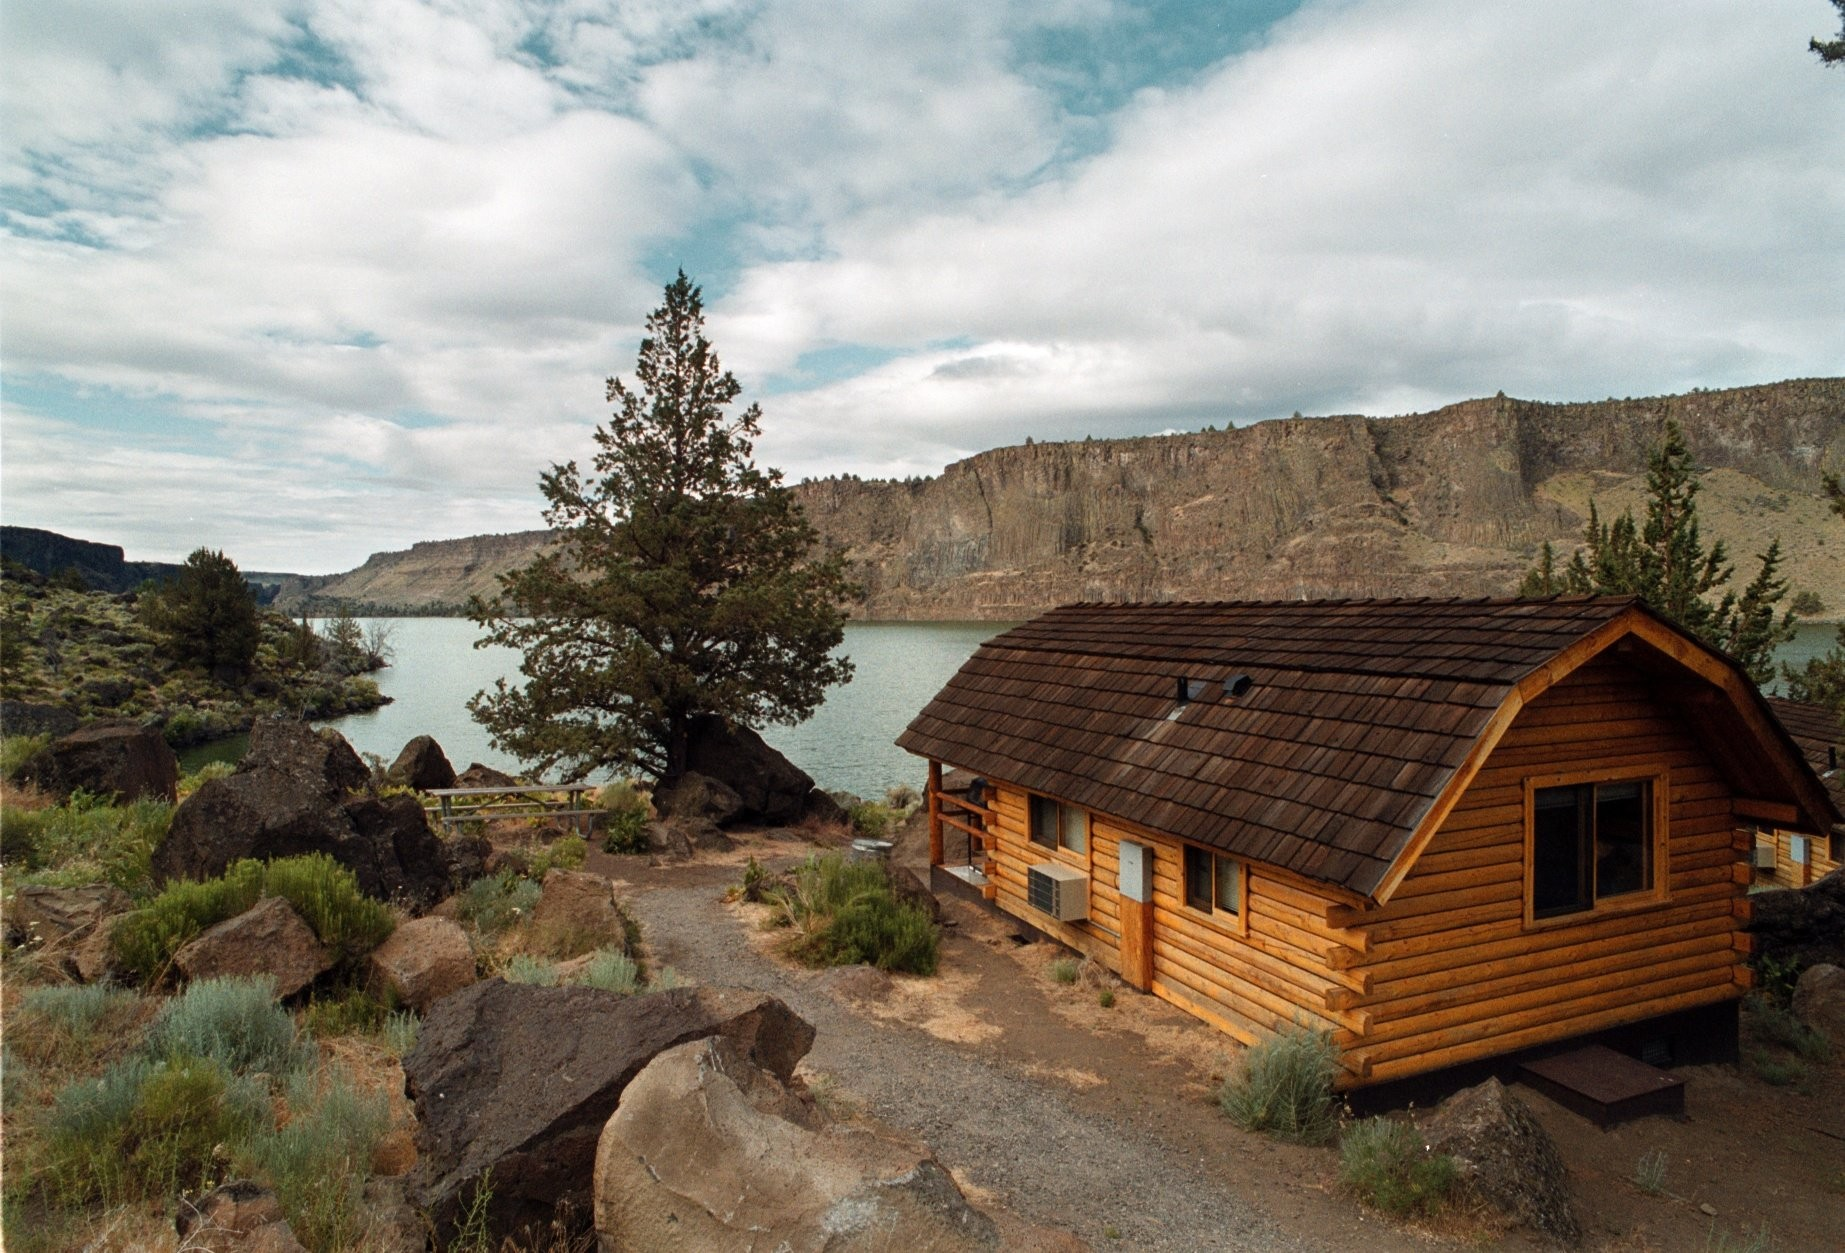 25 places to rent a cabin around Oregon - oregonlive com